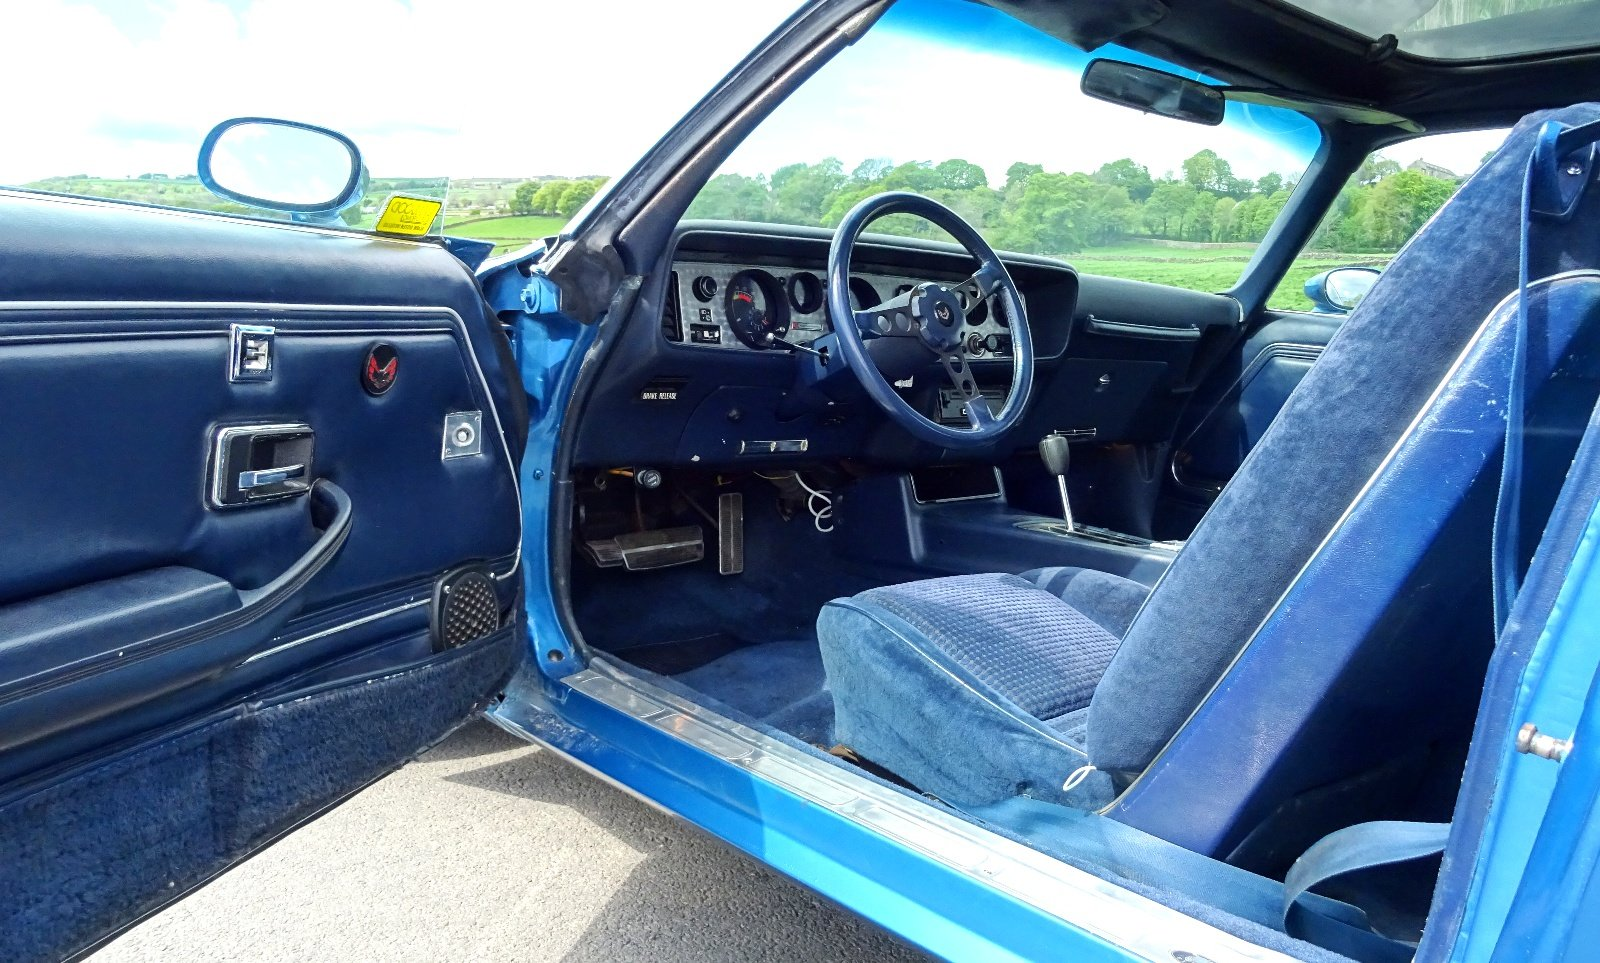 1980 PONTIAC FIREBIRD TRANS AM 6.6 LITRE V8 AMERICAN MUSCLE CAR For Sale (picture 6 of 6)